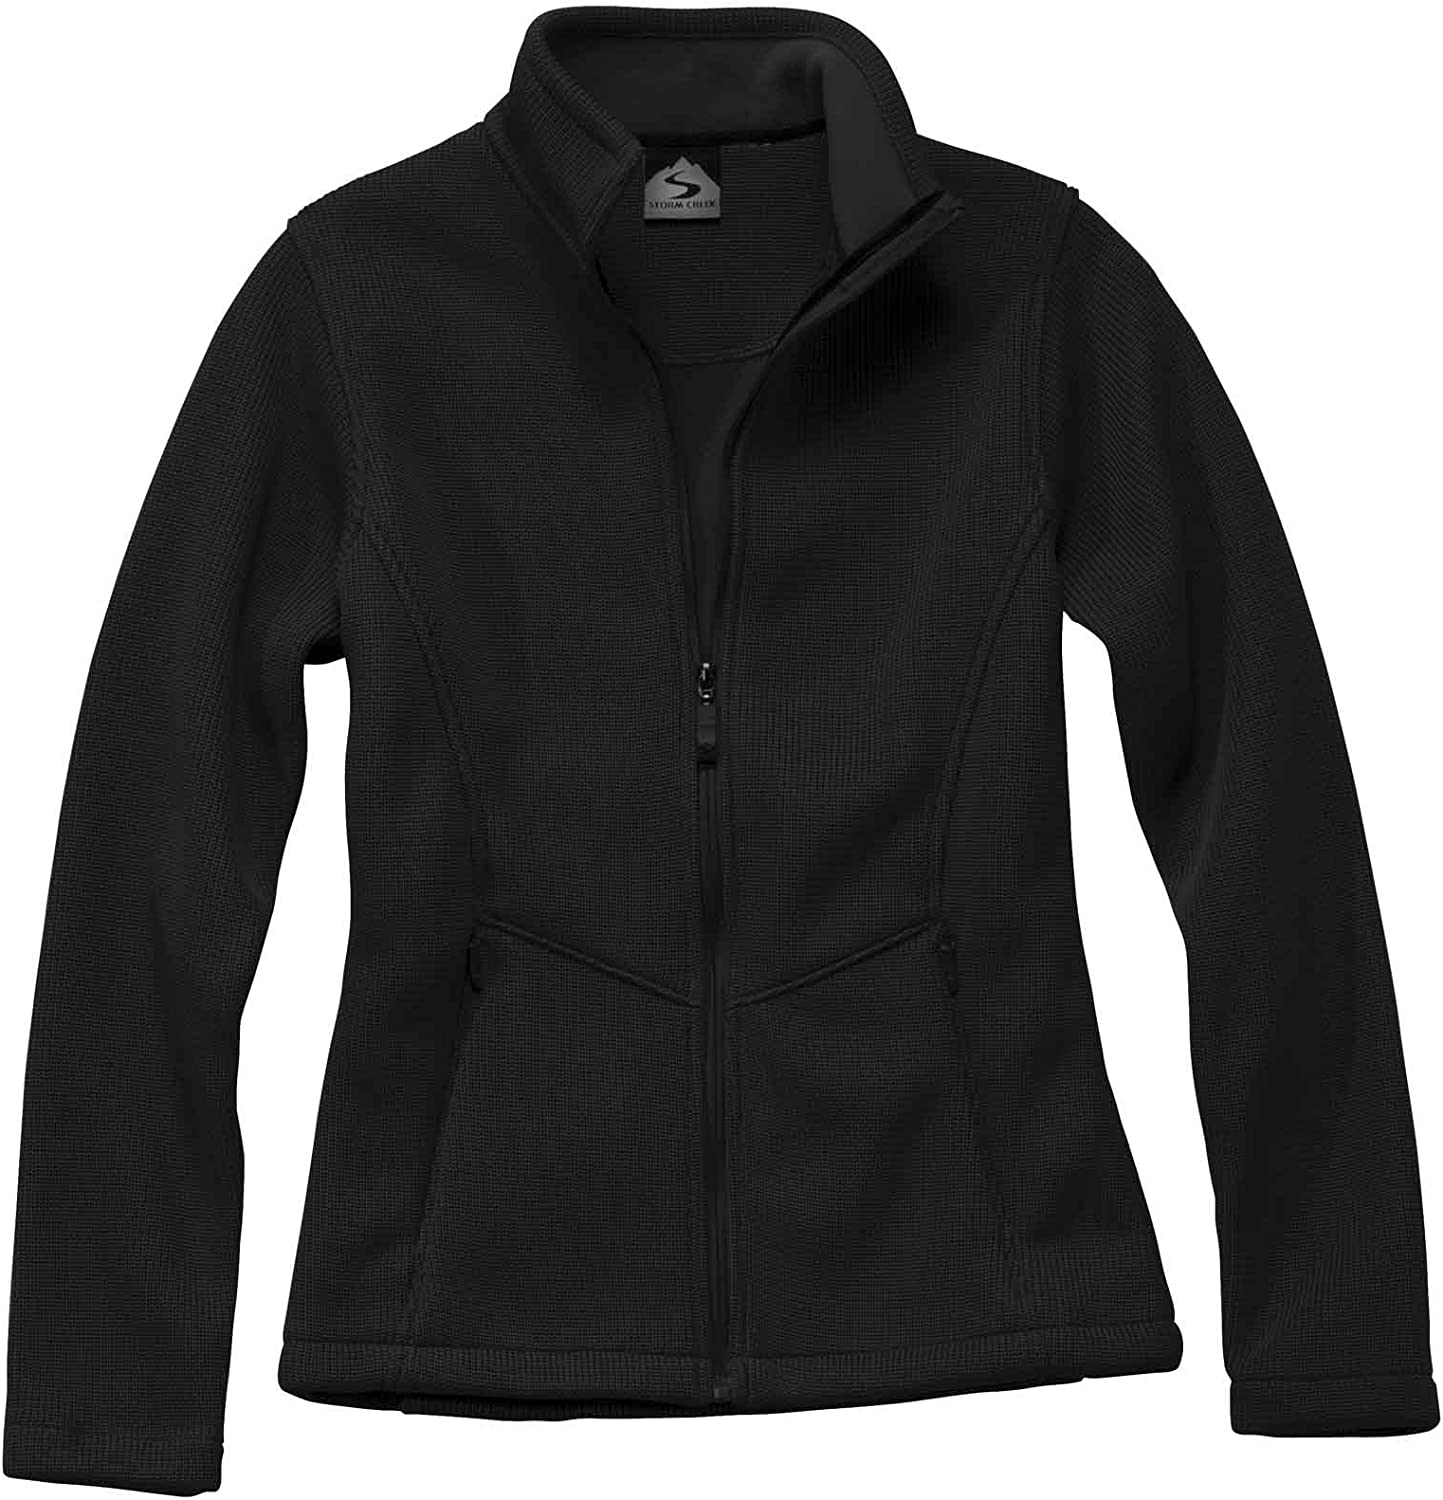 Storm Creek Women's Ironweave Bonded Fleece Jacket